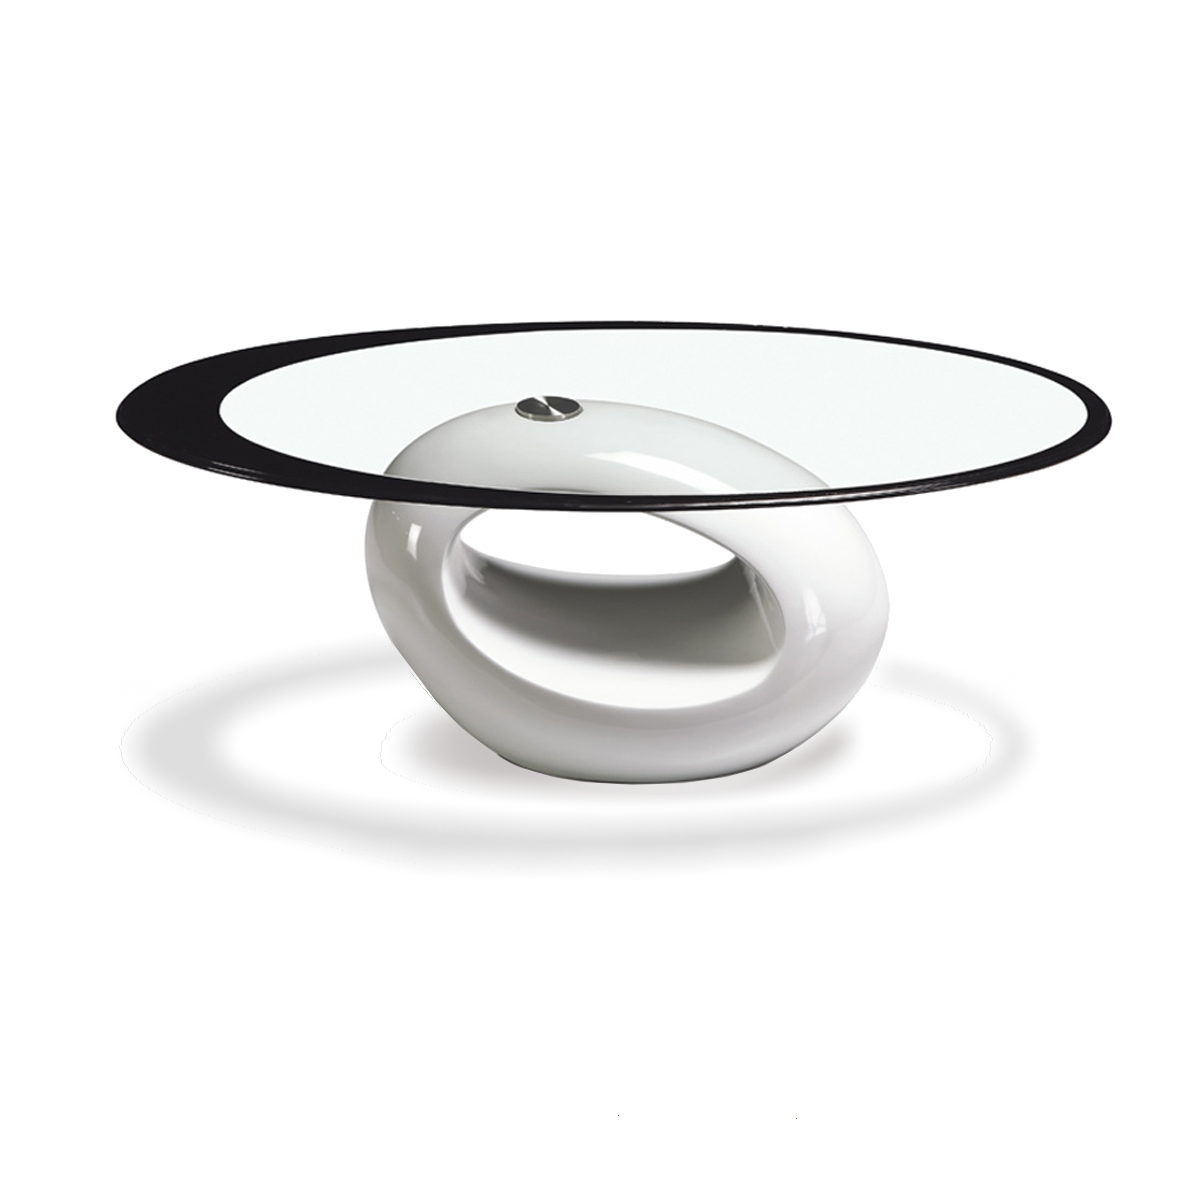 Super Stylish Oval Shape Coffee Table Oval Shape Glass Coffee Theyellowbook Wood Chair Design Ideas Theyellowbookinfo